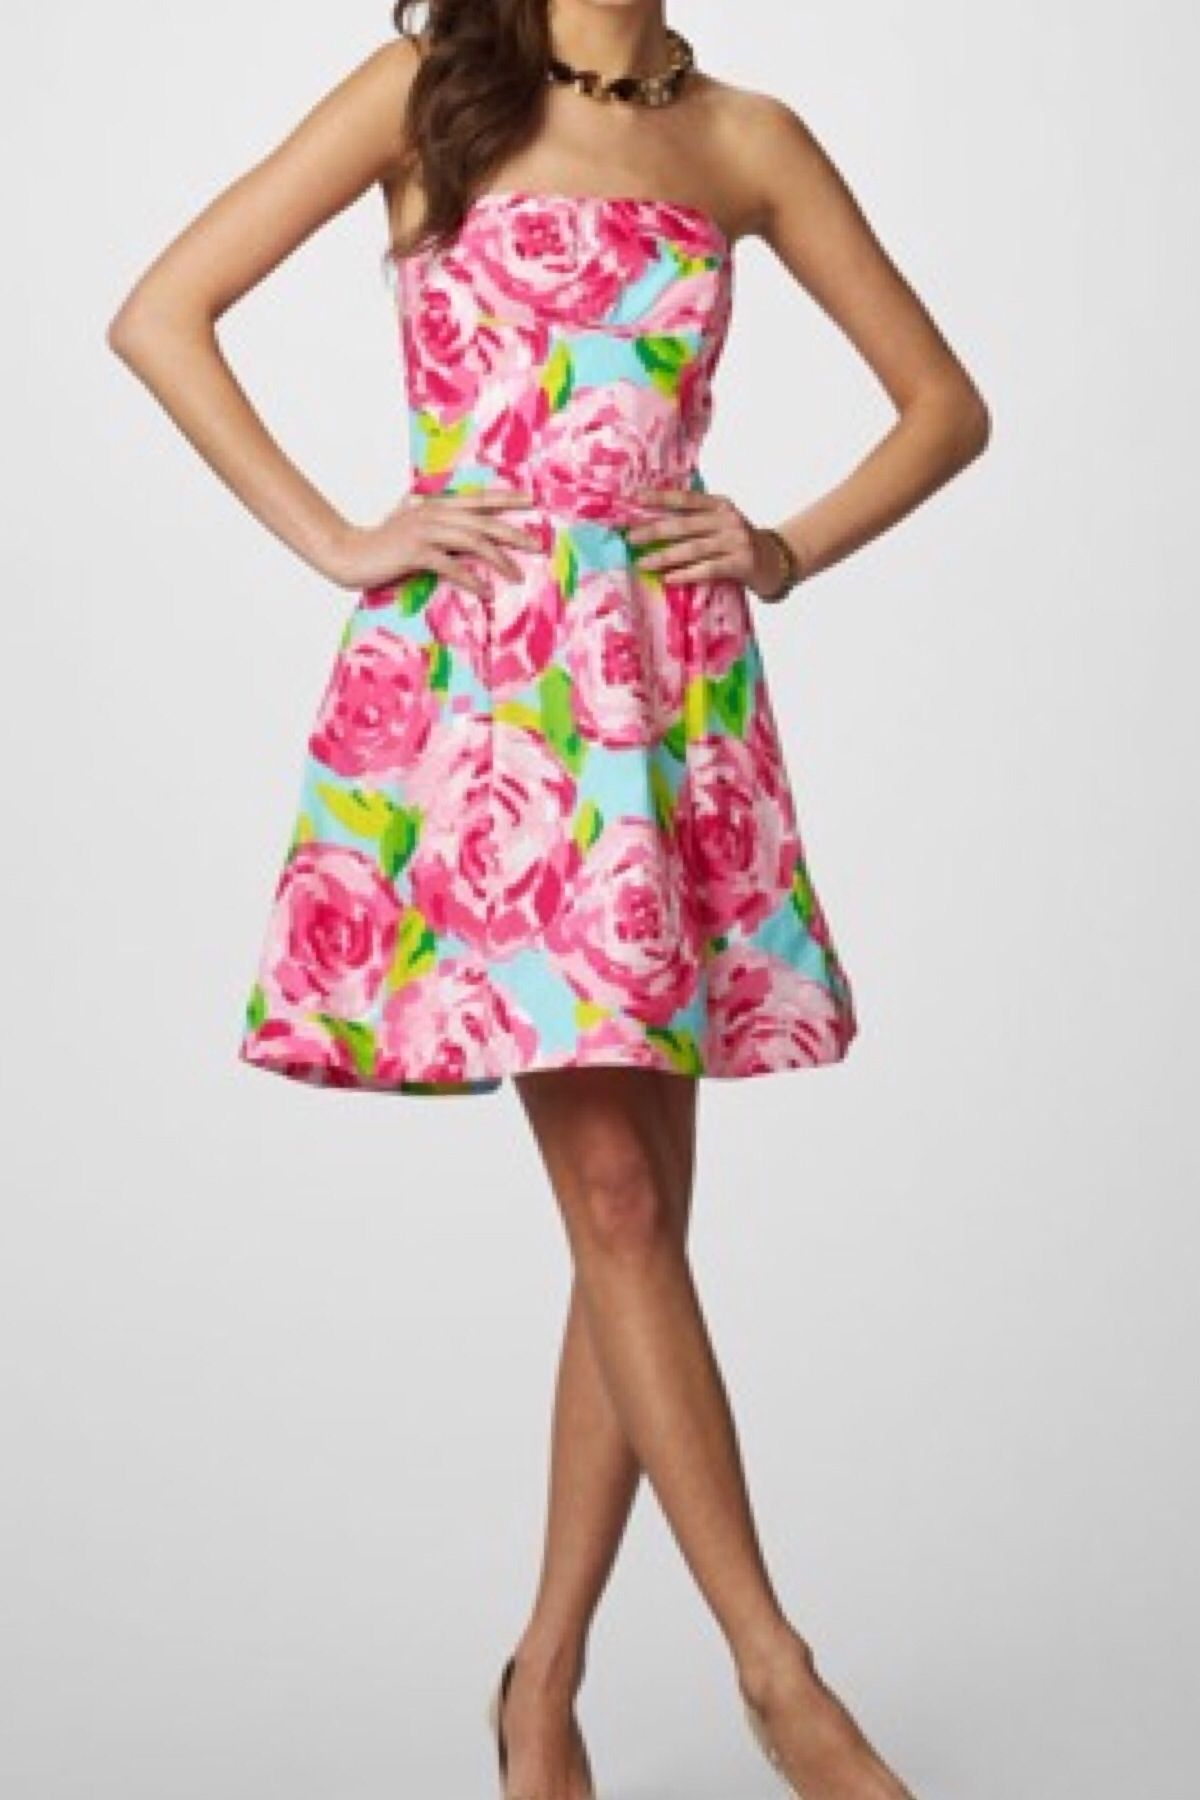 Lilly Pulitzer First Impression Hotty Pink dress. | style | Pinterest